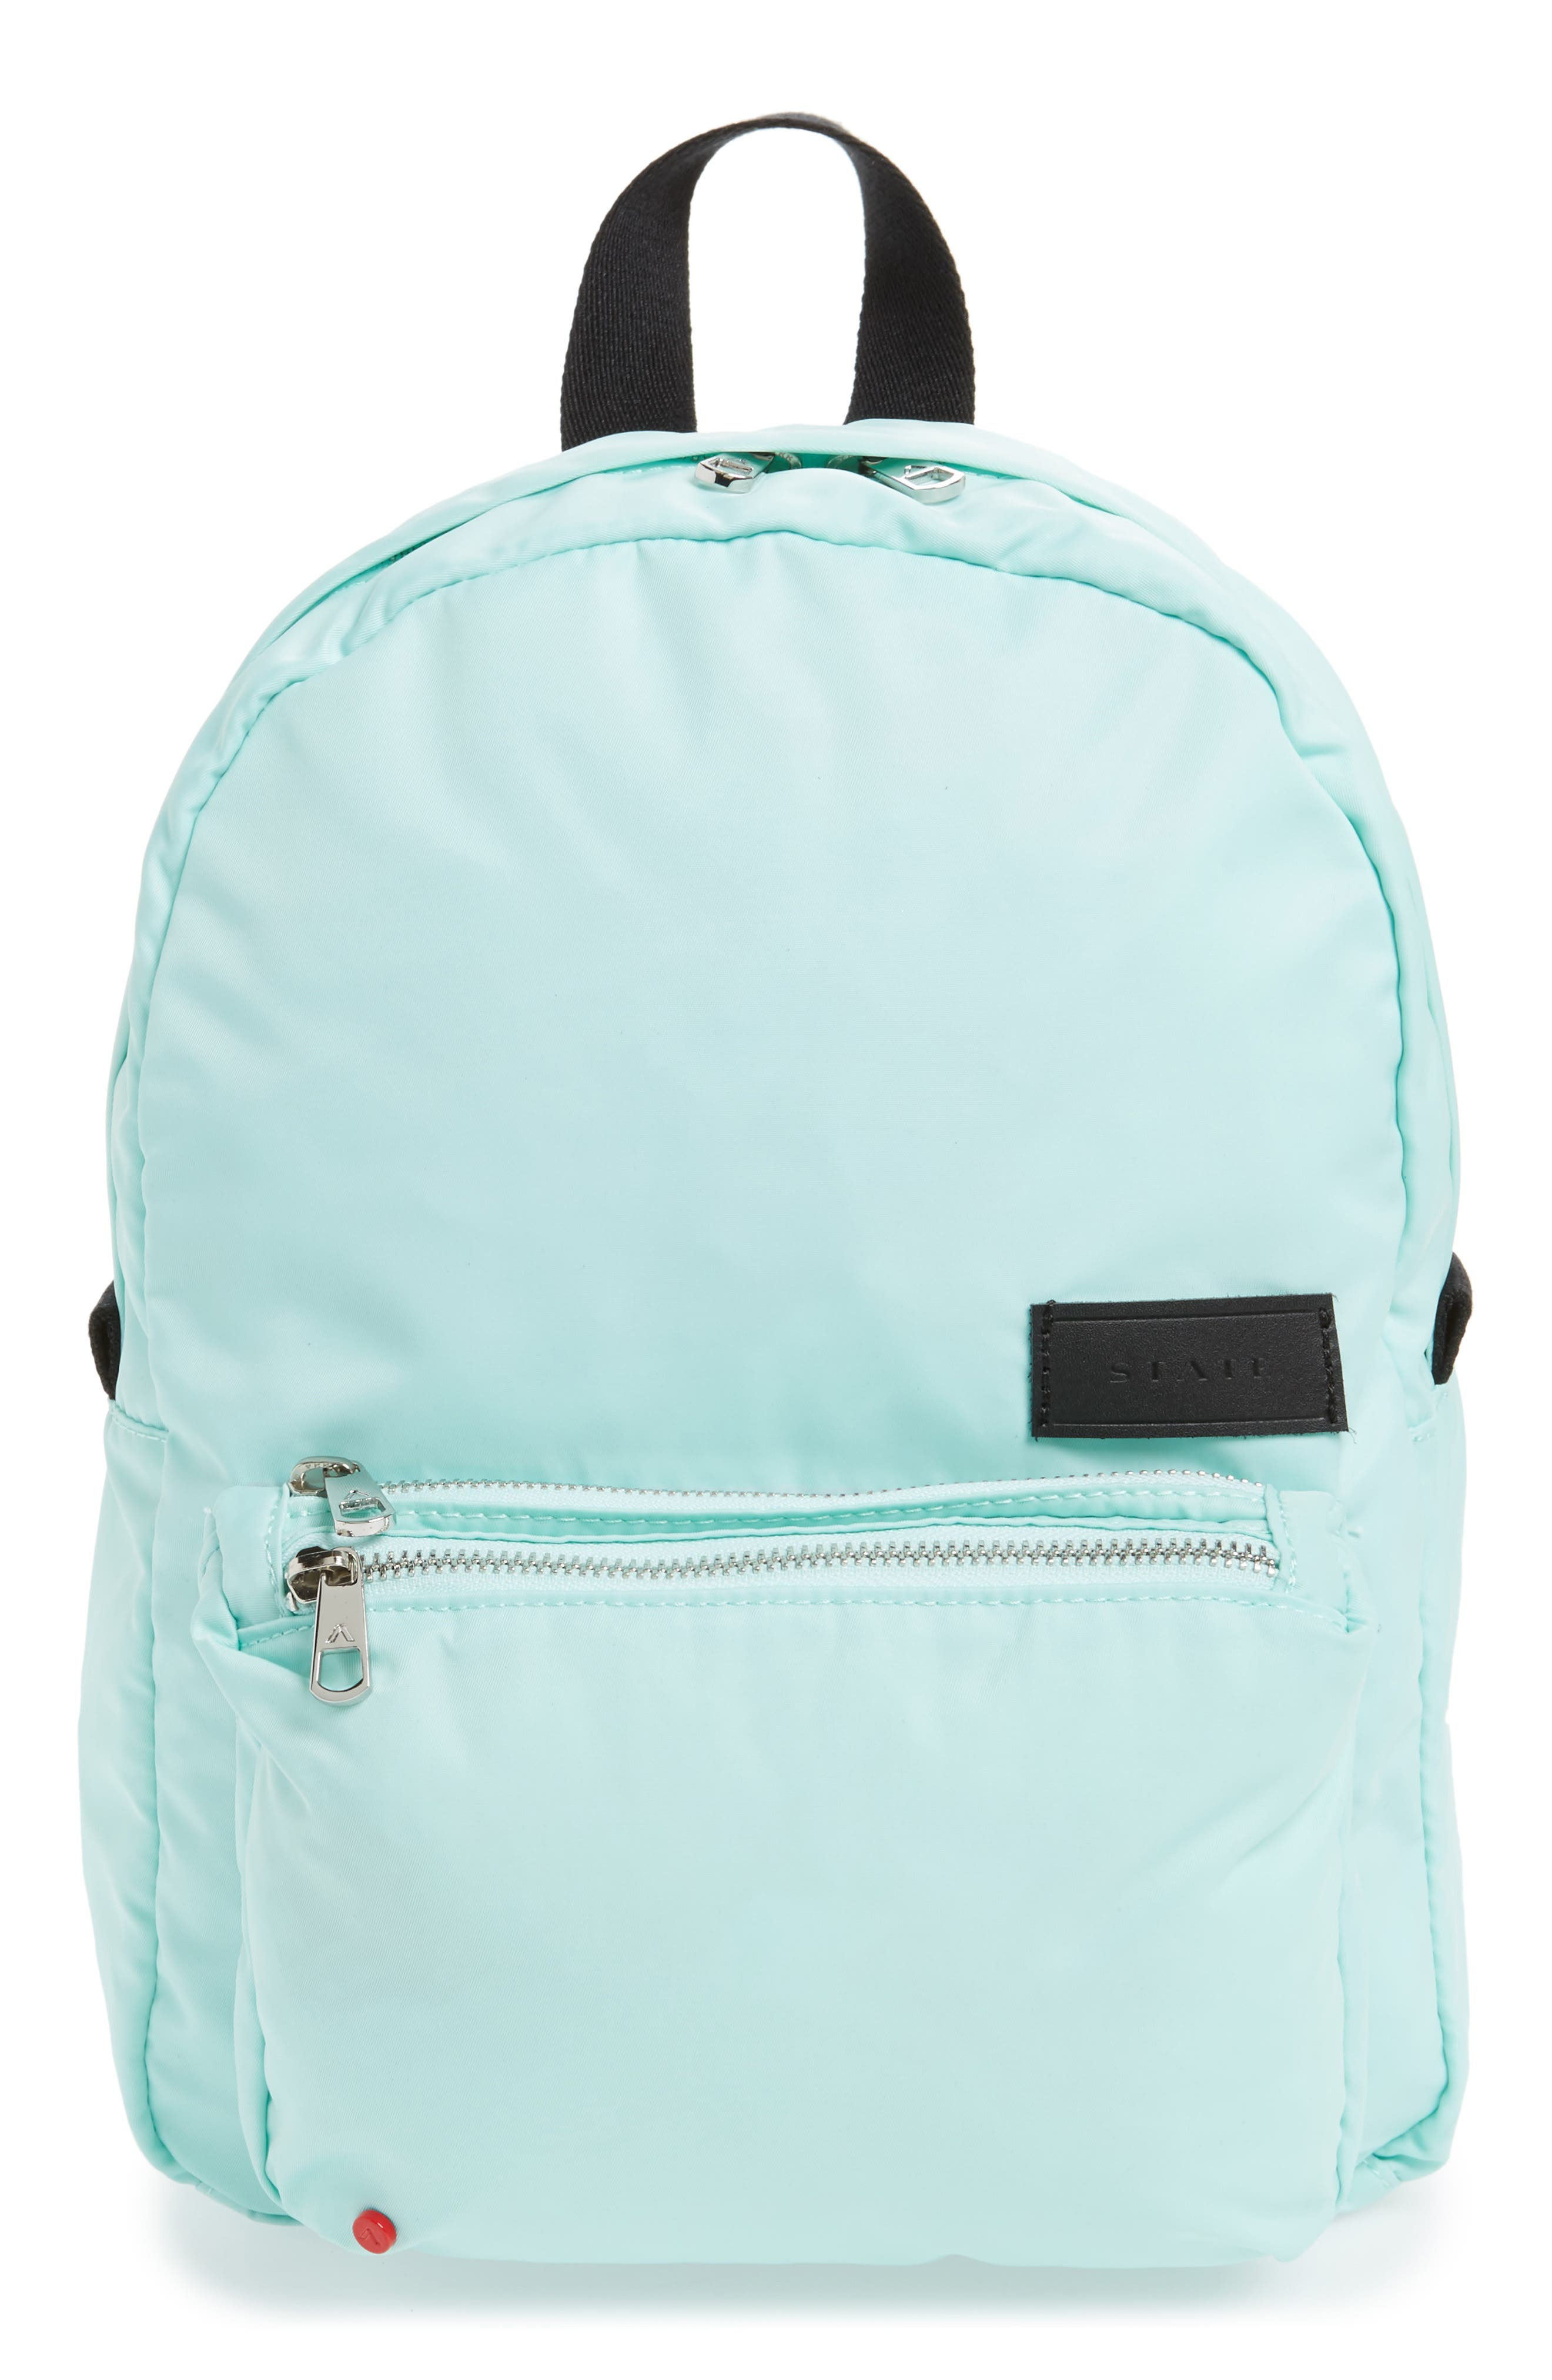 STATE Bags The Heights Mini Lorimer Nylon Backpack